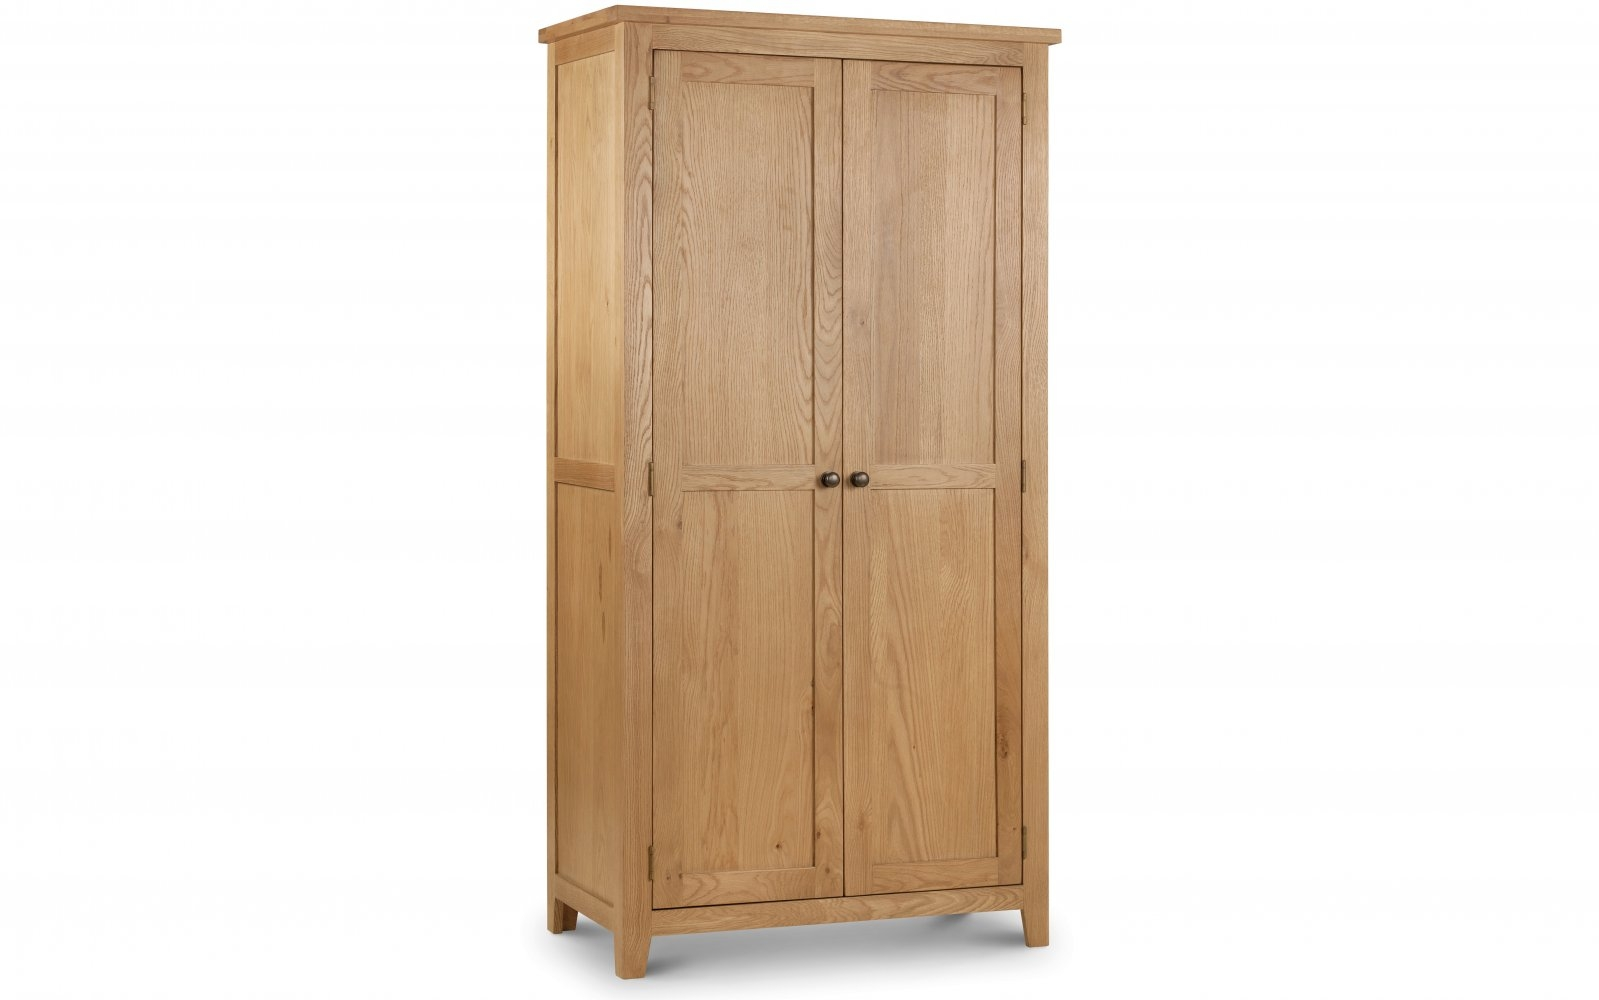 American Oak 2 door Robe